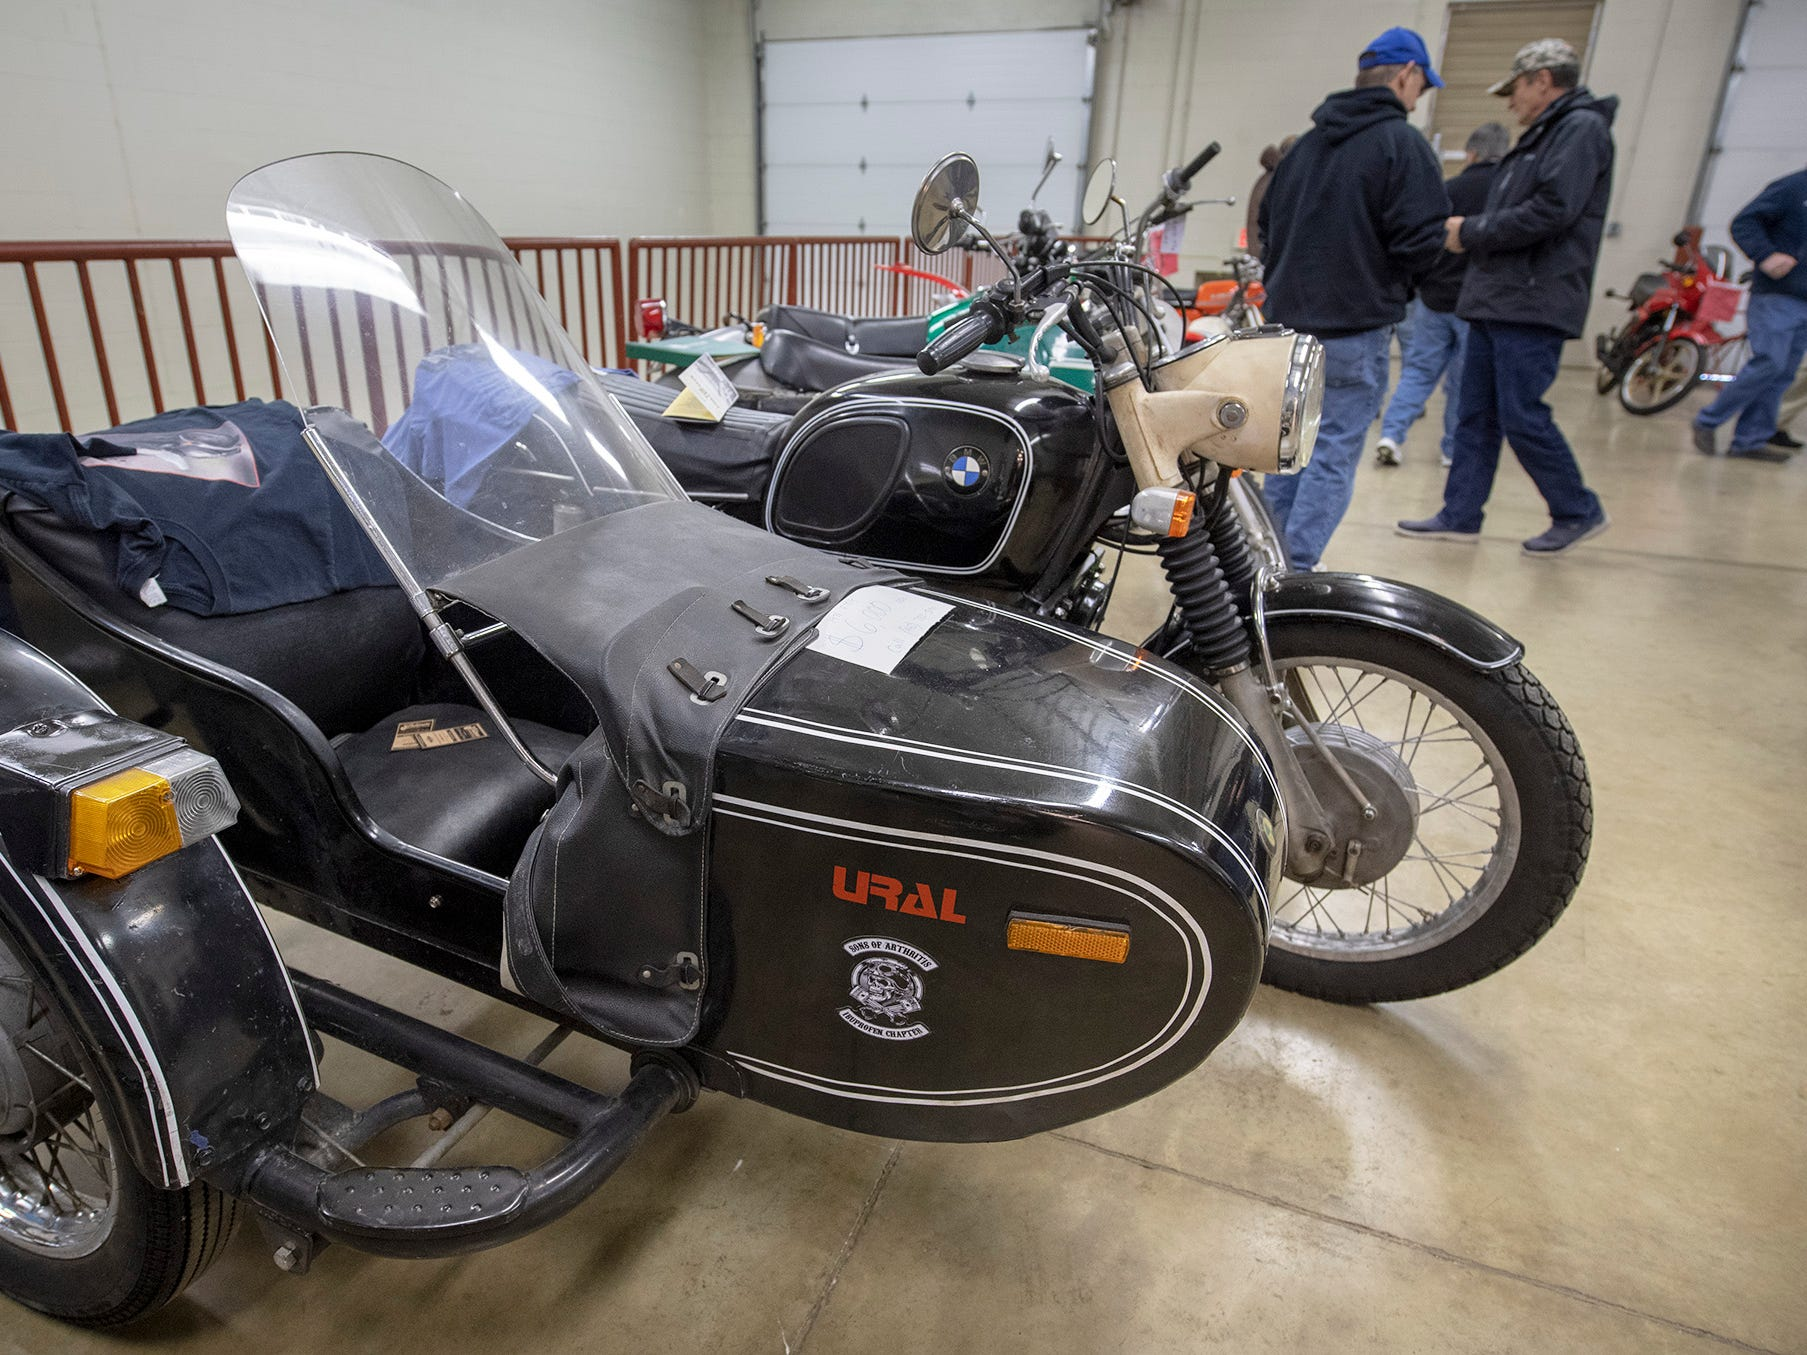 A 1971 BMW R75/5 with a side car for sale inside the Bike Corral during the The Potomac Vintage Riders' York Swap Meet Sunday January 27, 2019 at the York Expo Center.